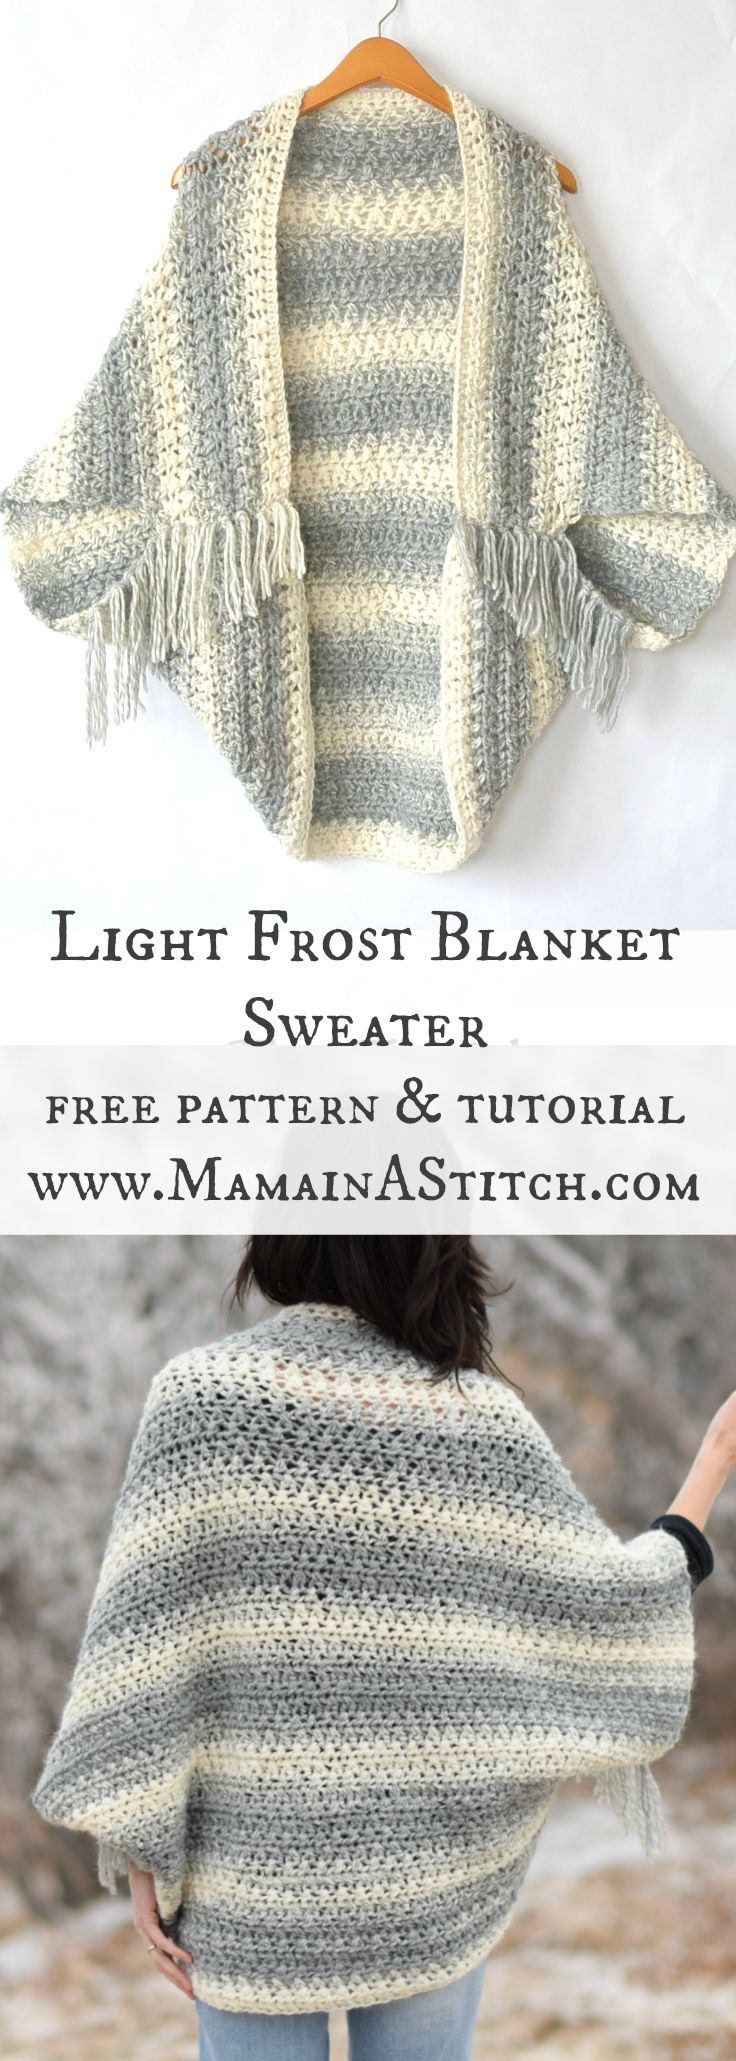 Light Frost Easy Blanket Sweater (shrug) Crochet Pattern via @MamaInAStitch